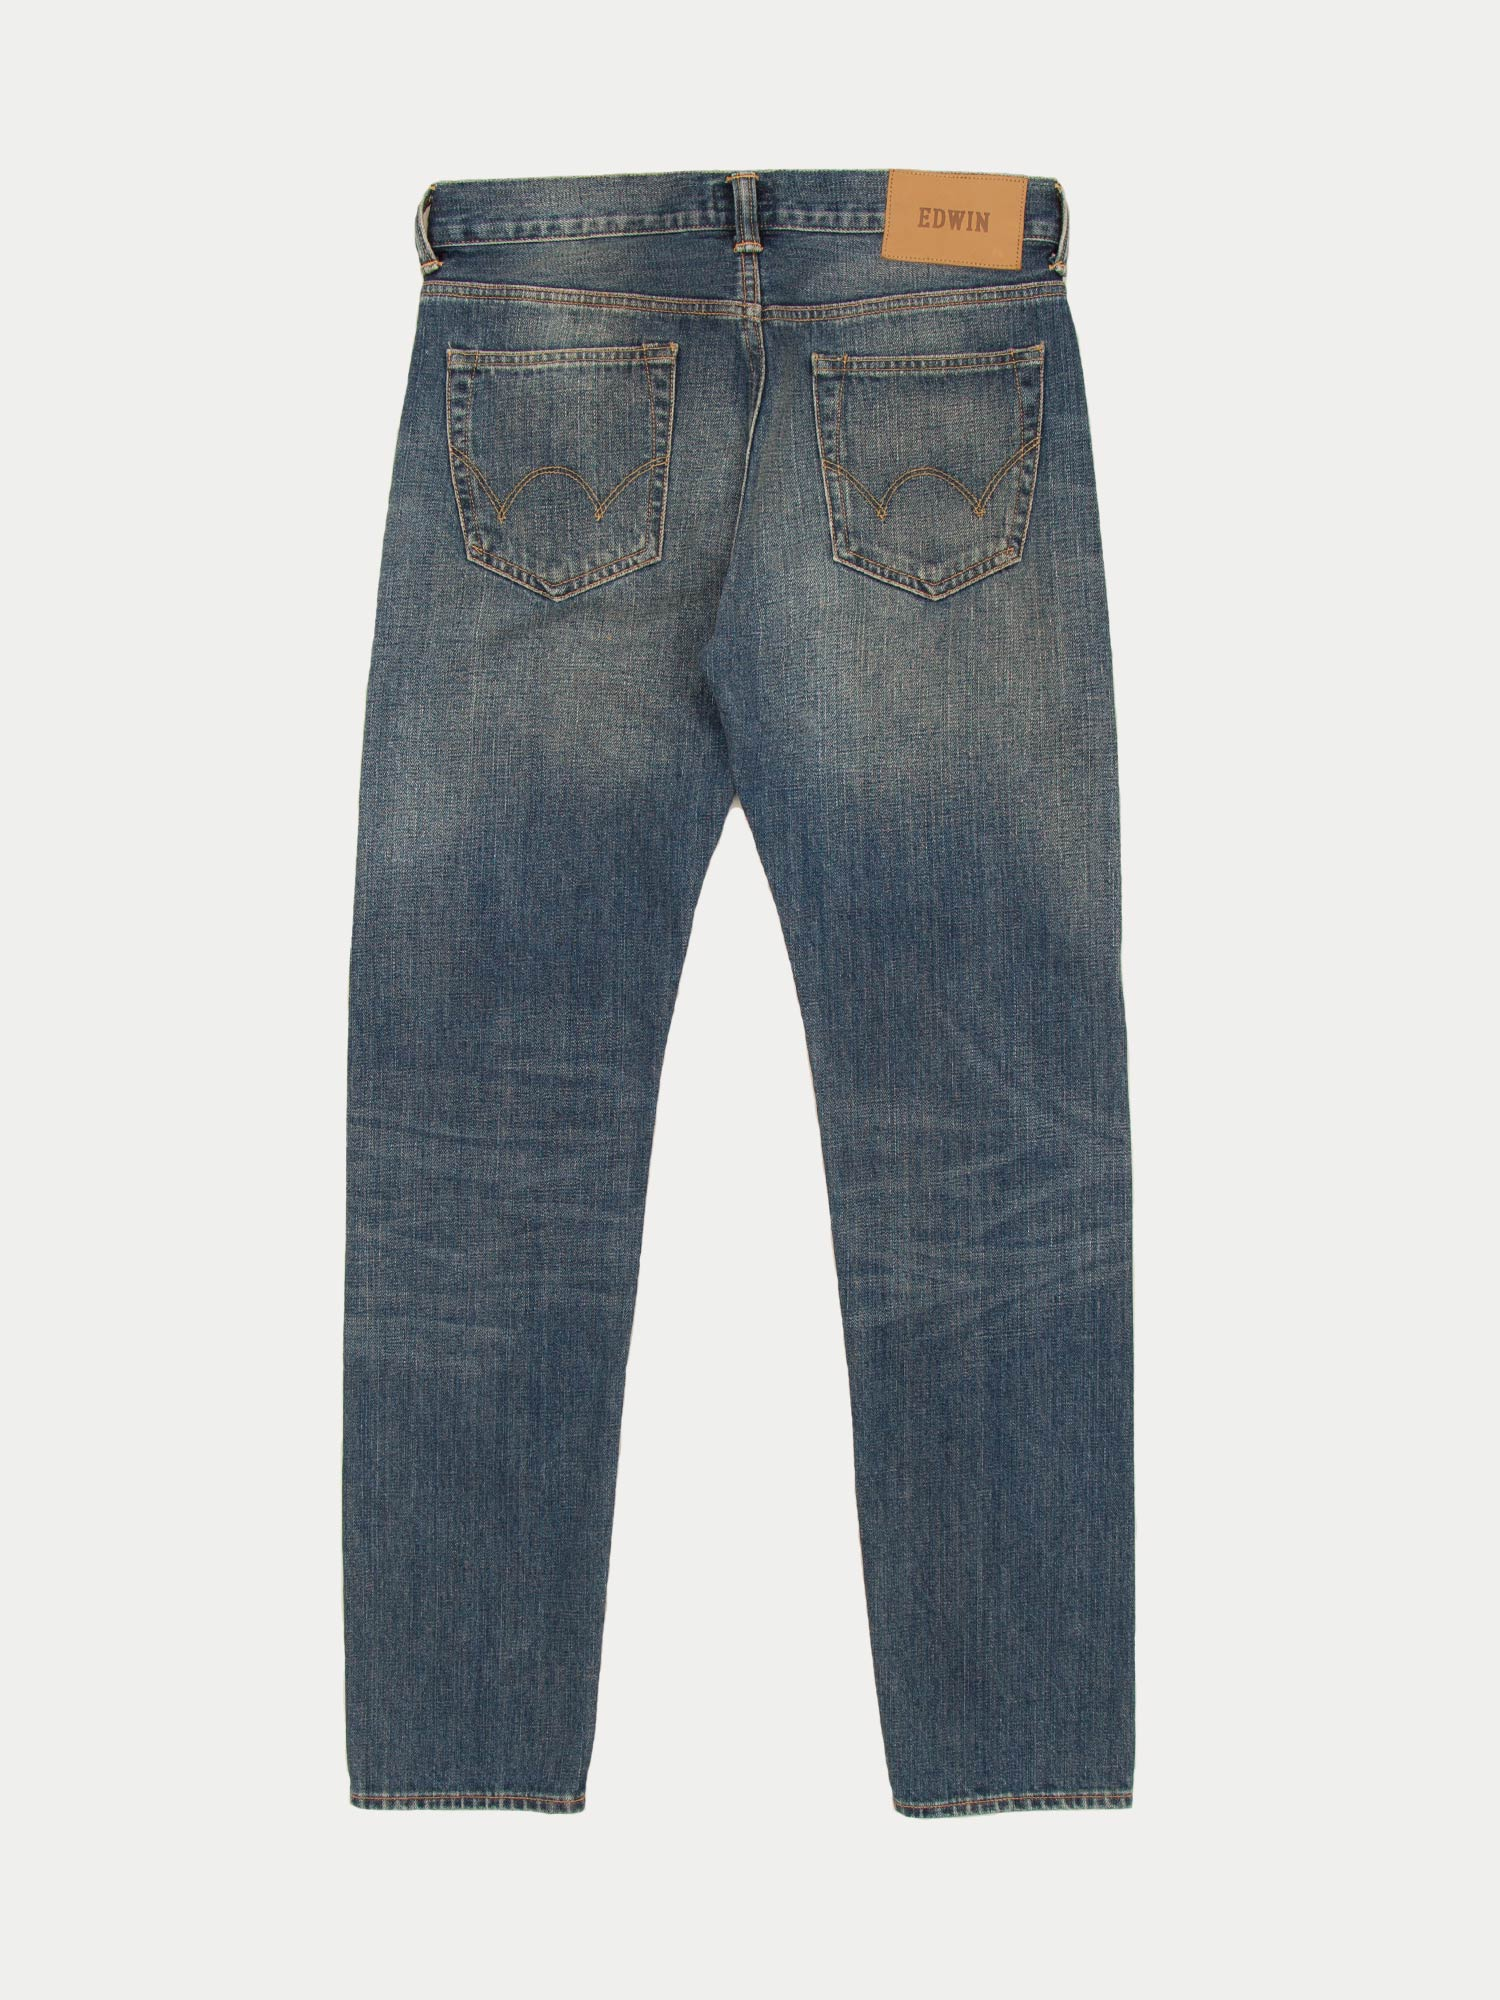 Edwin ED-80 14oz Red Selvage Jeans (Satomi Wash)